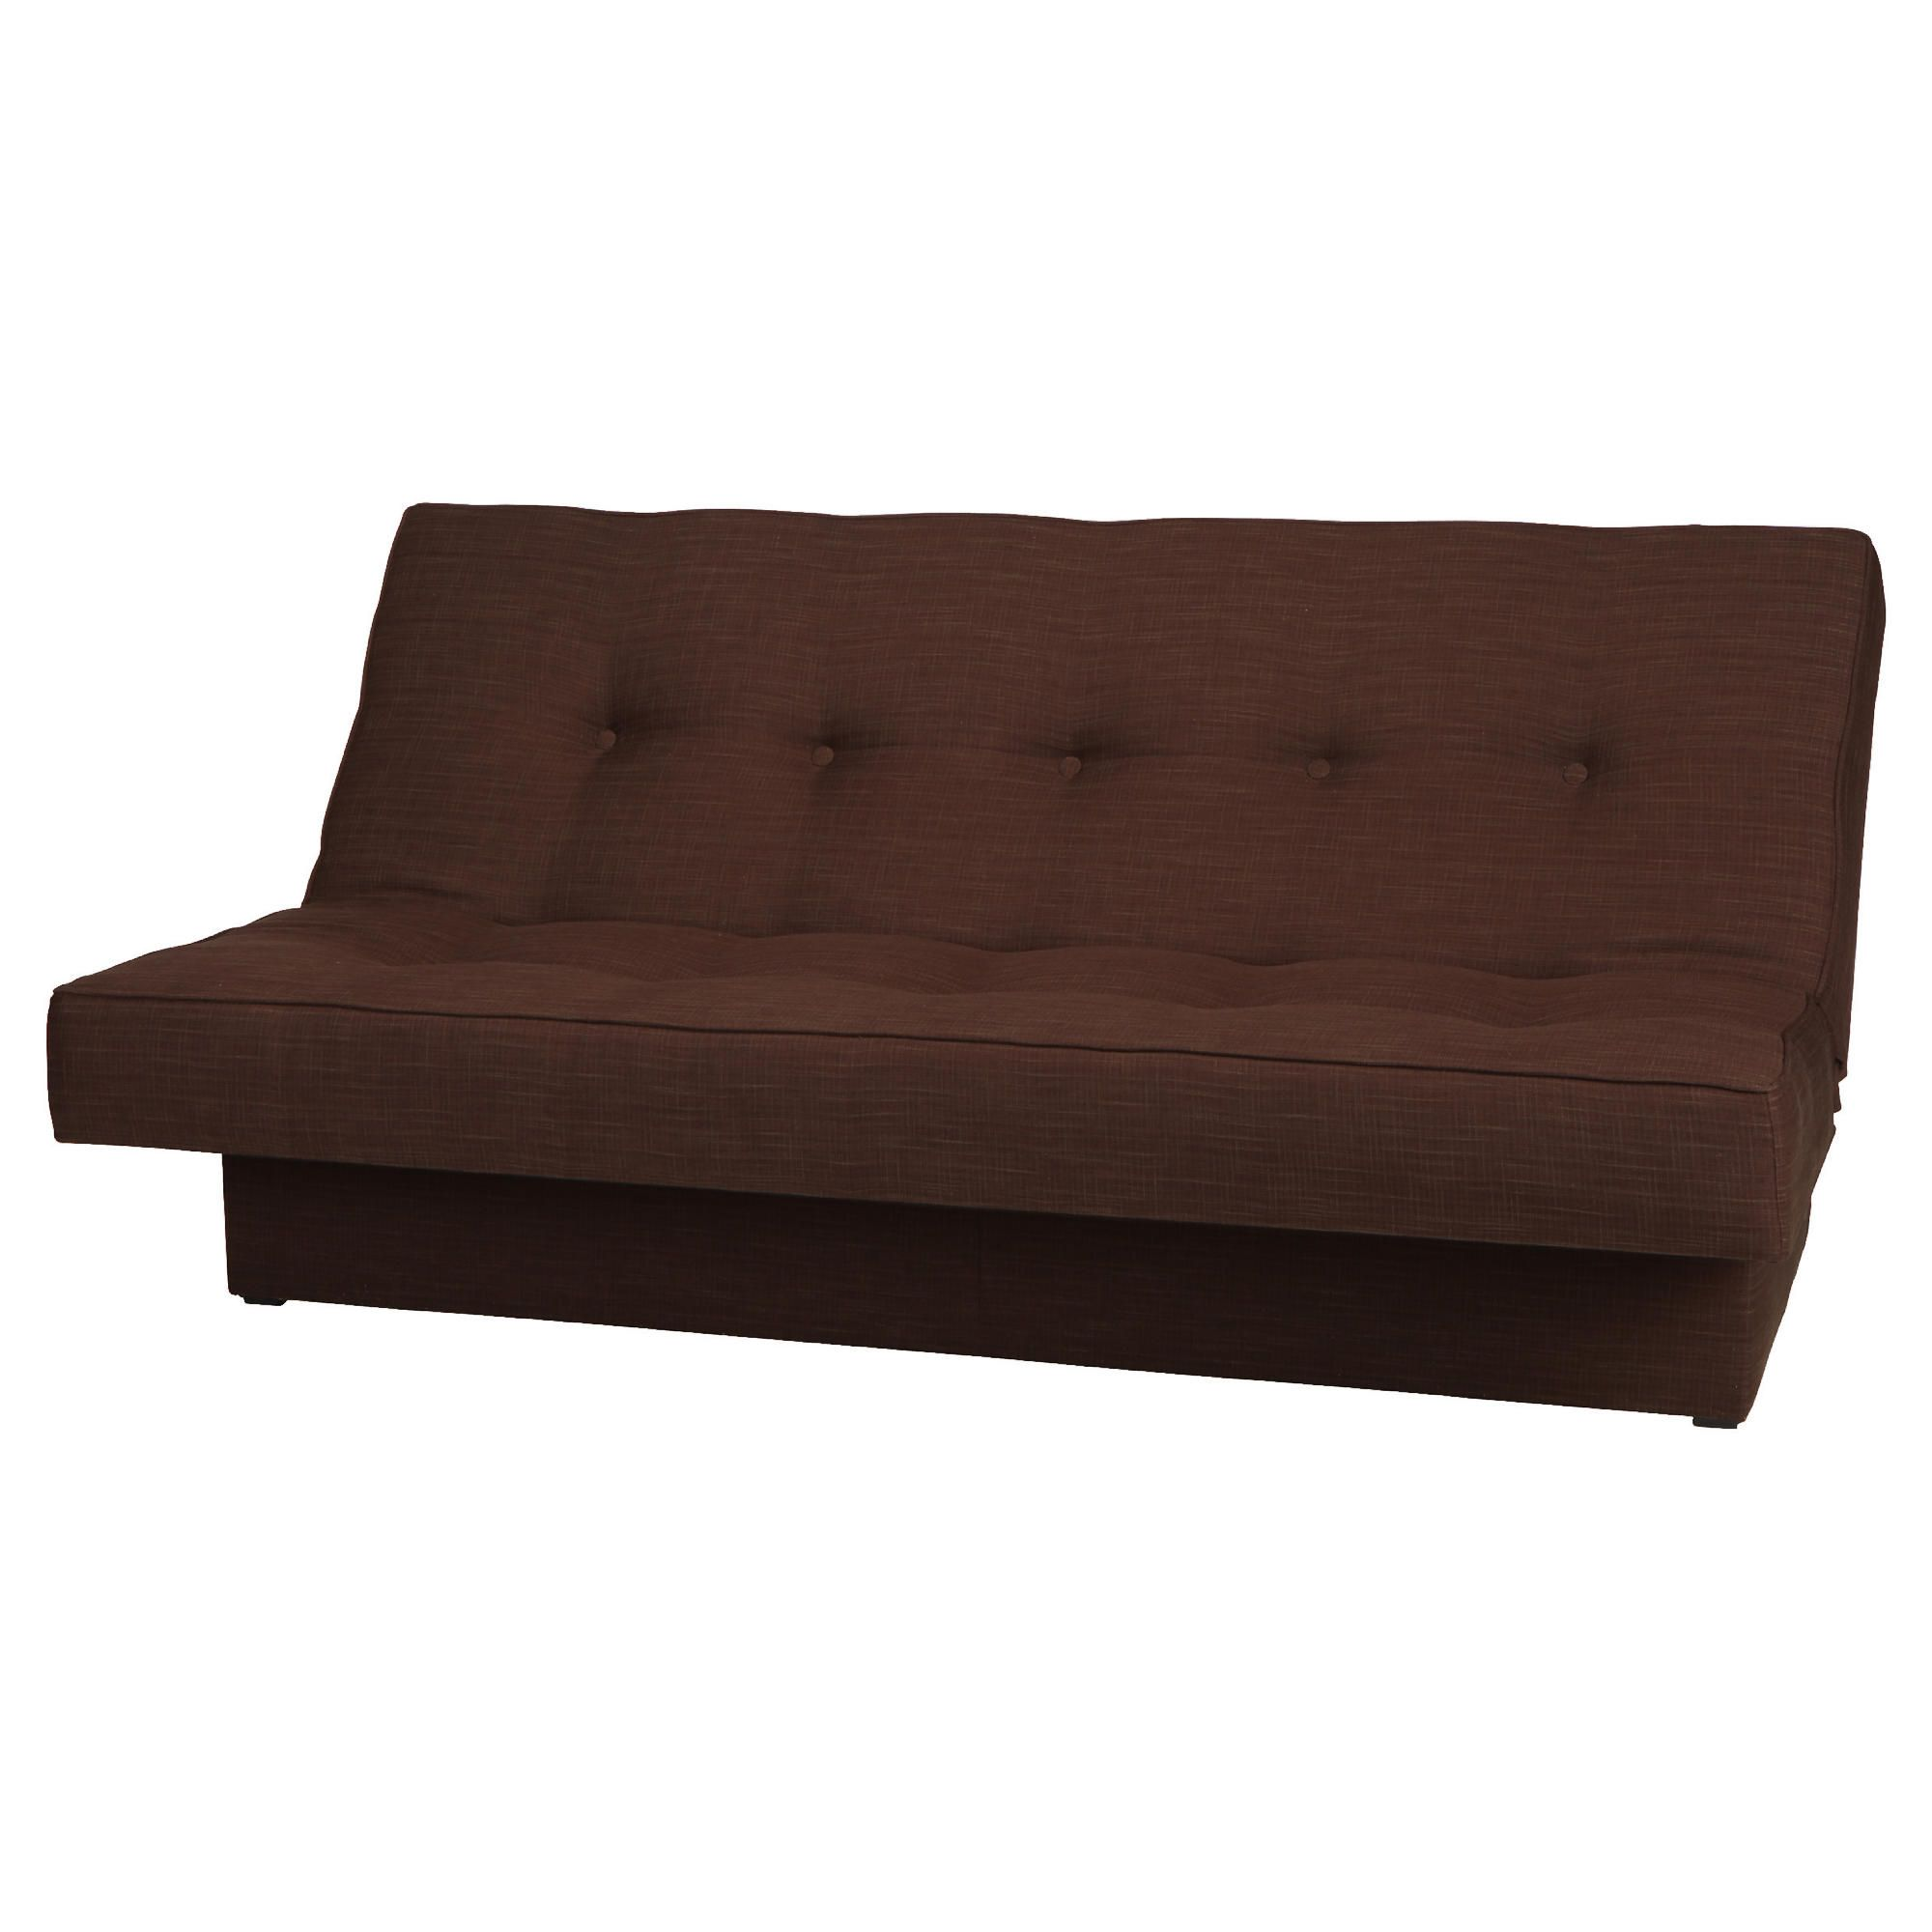 Clinton Fabric Pocket Sprung Clic Clac Sofabed Chocolate at Tescos Direct